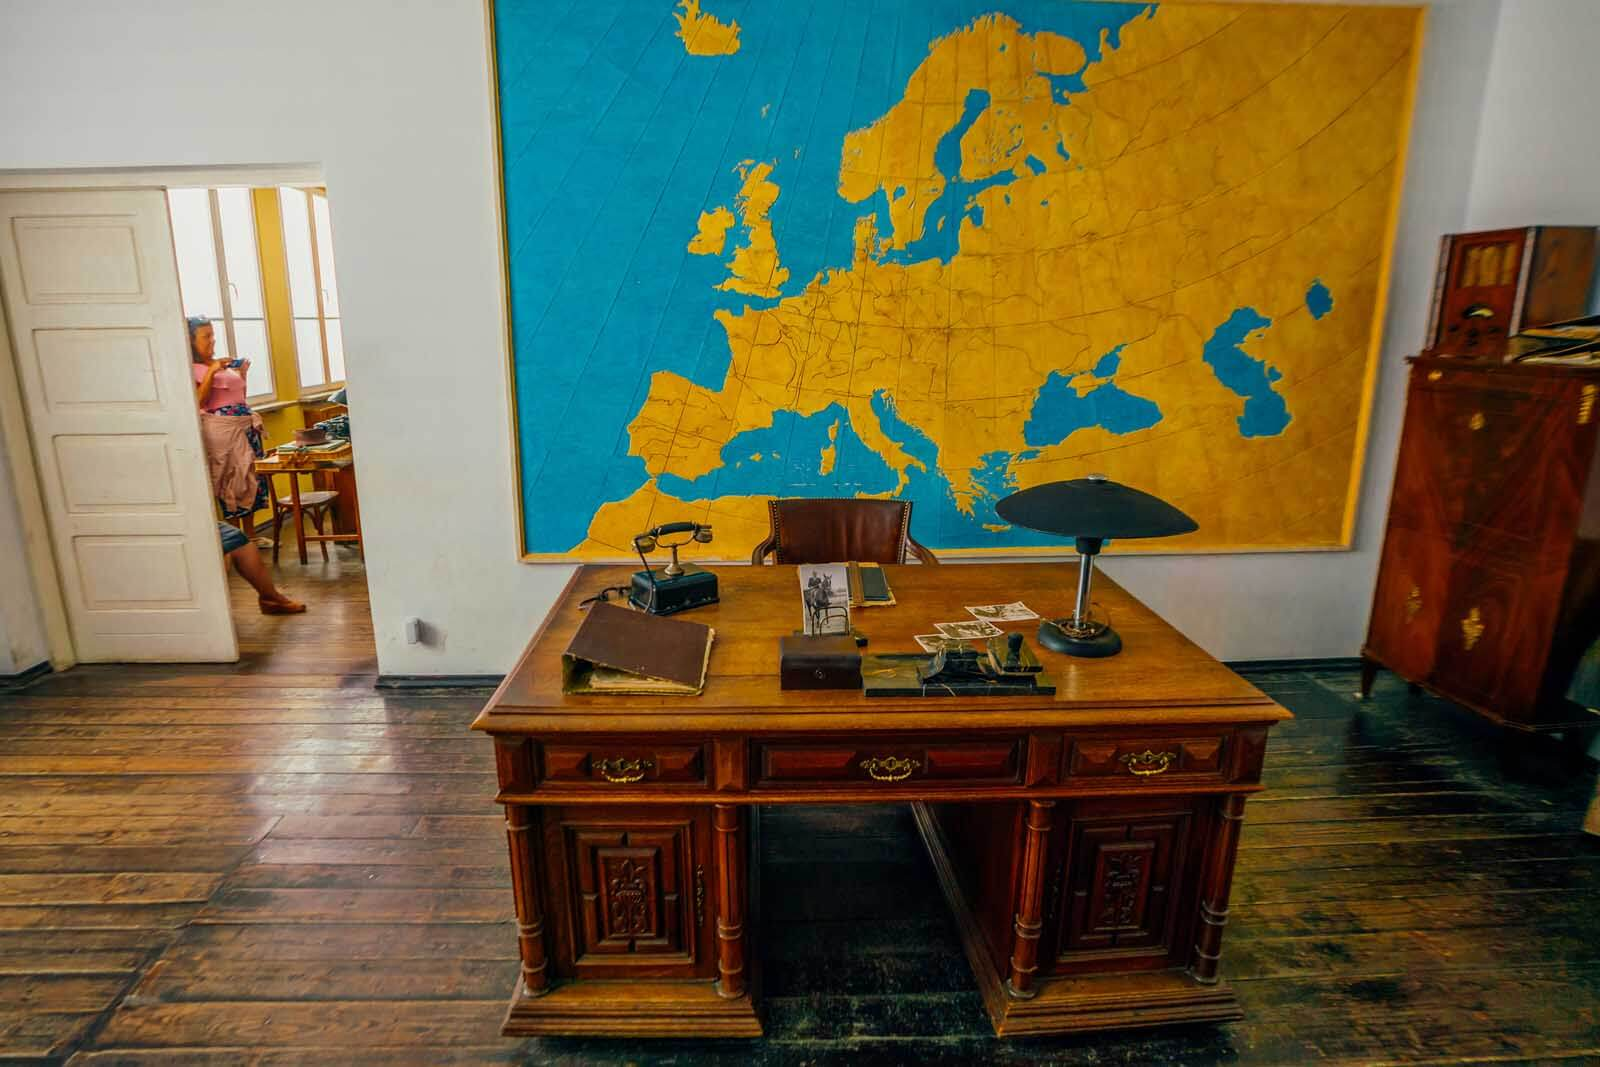 Oskar Schindler's Desk in the Oskar Schindler Factory in Krakow